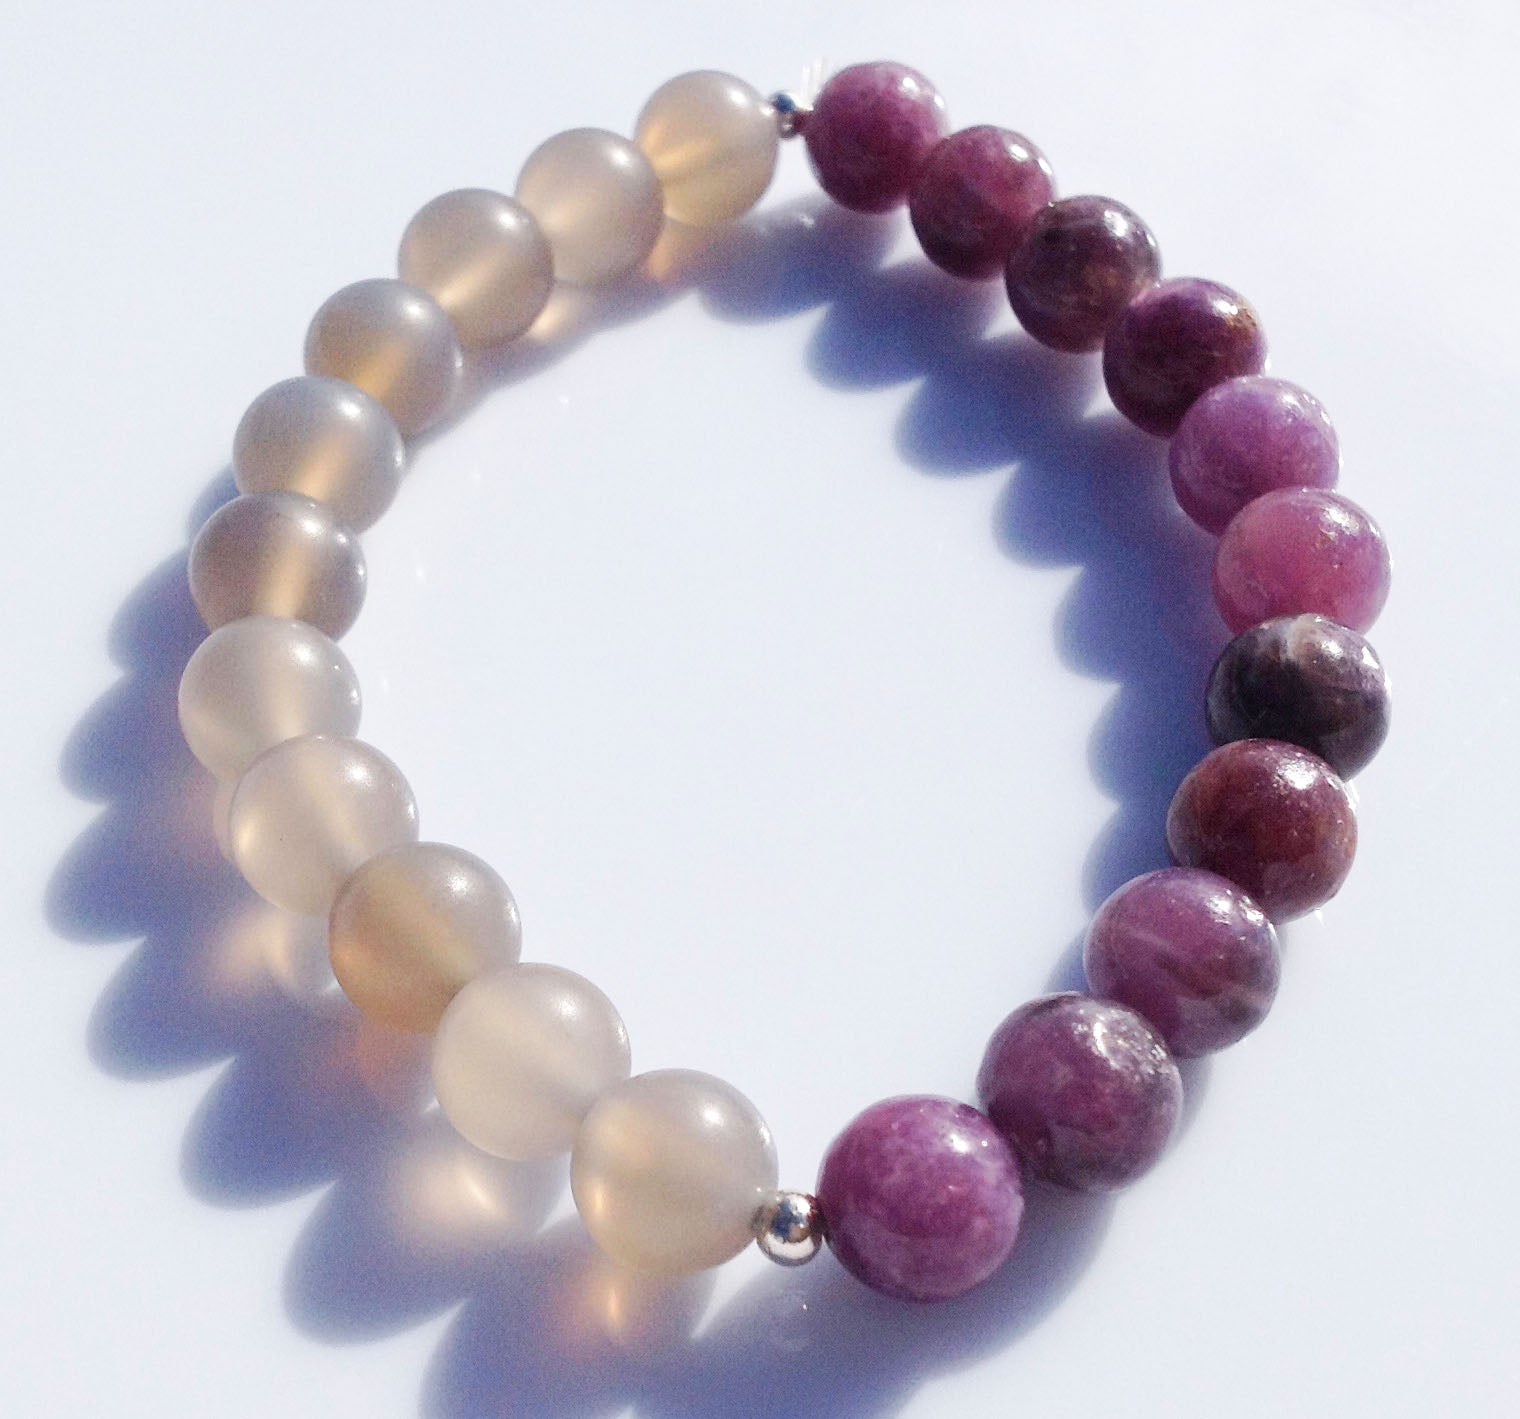 Balance Collection Lepidolite, 925 silver & Grey Agate Yoga Meditation Wrist Mala Bracelet Crown Chakra Focus Healing Energy Reiki